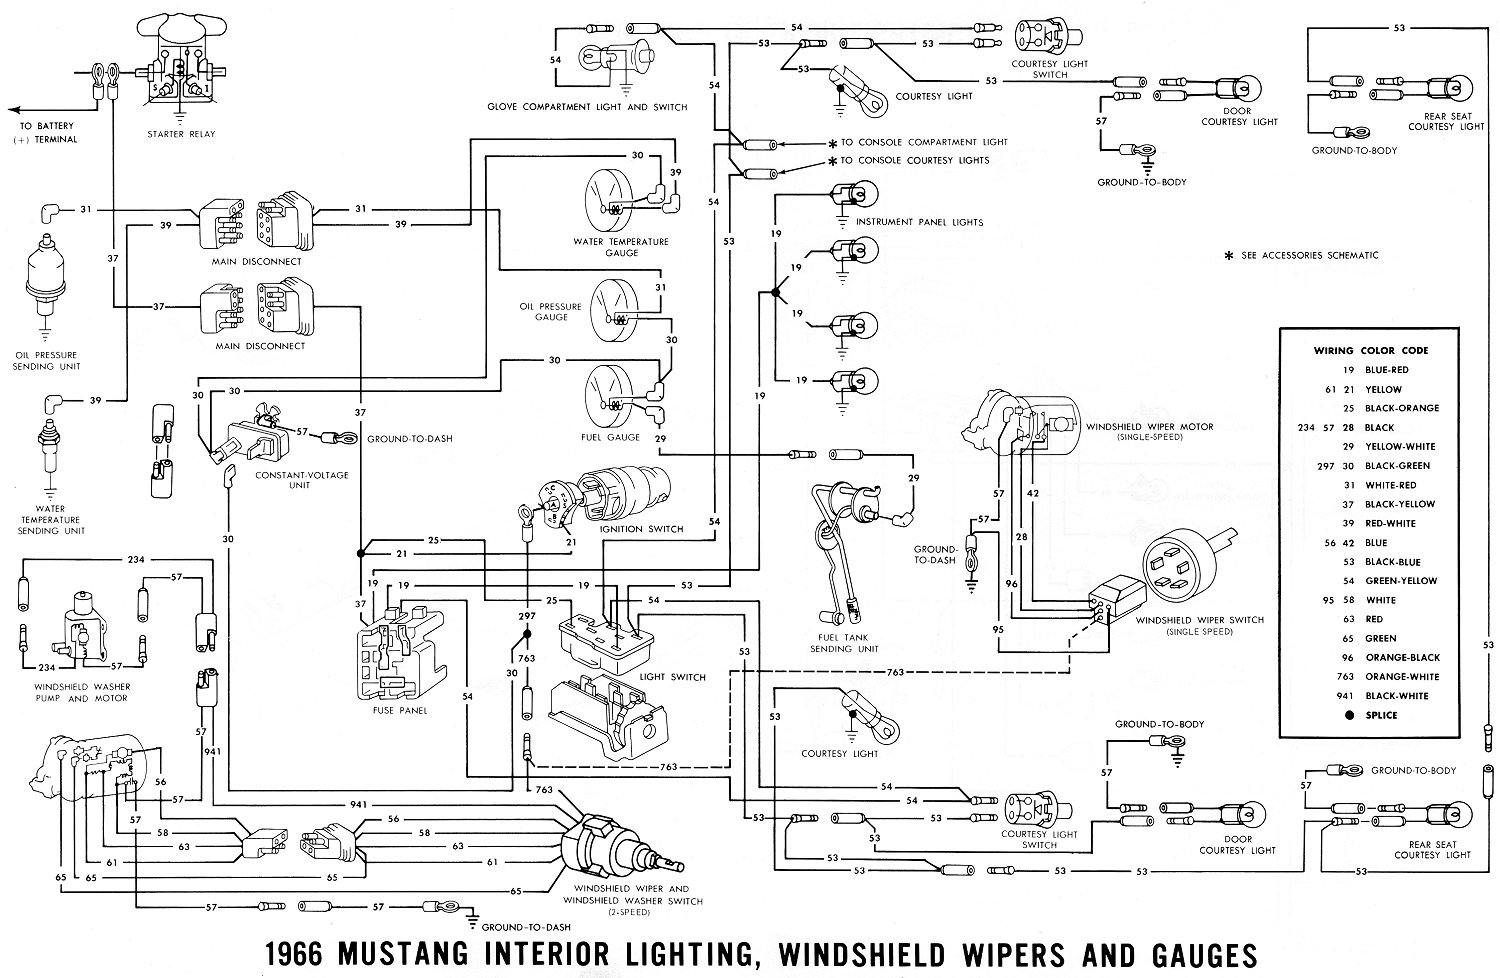 1971 mustang ignition wiring diagram wiring diagram 1966 mustang ireleast info 1966 mustang wiring diagrams average joe restoration wiring diagram